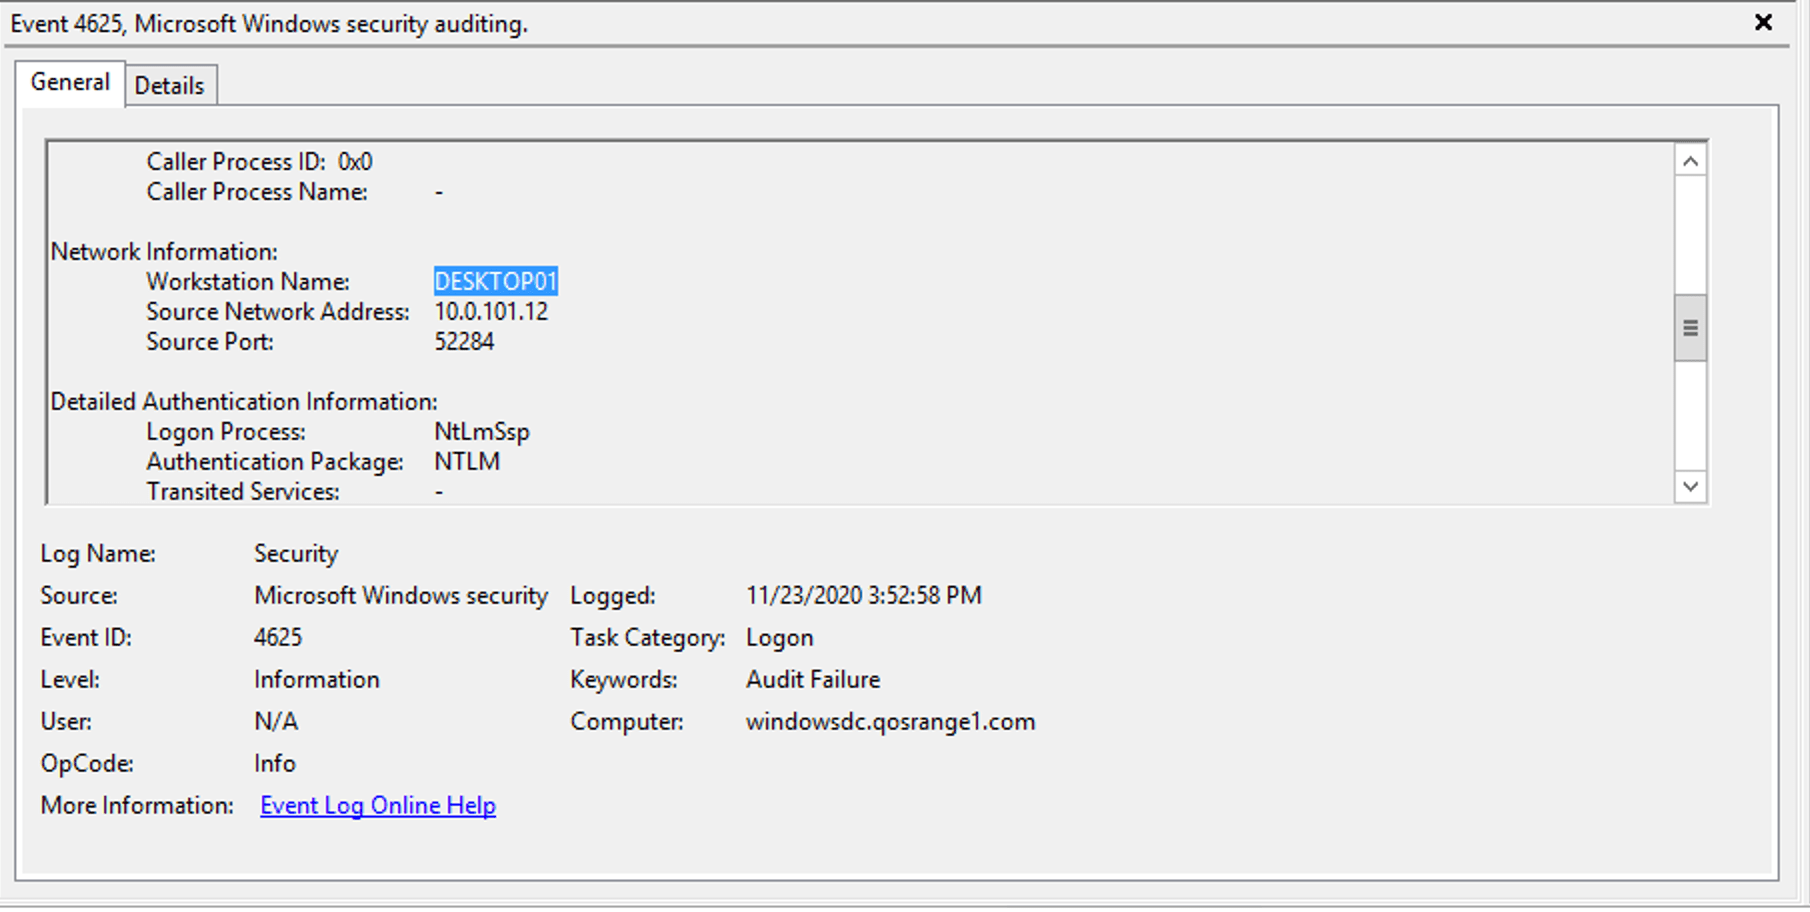 Microsoft Windows security auditing page